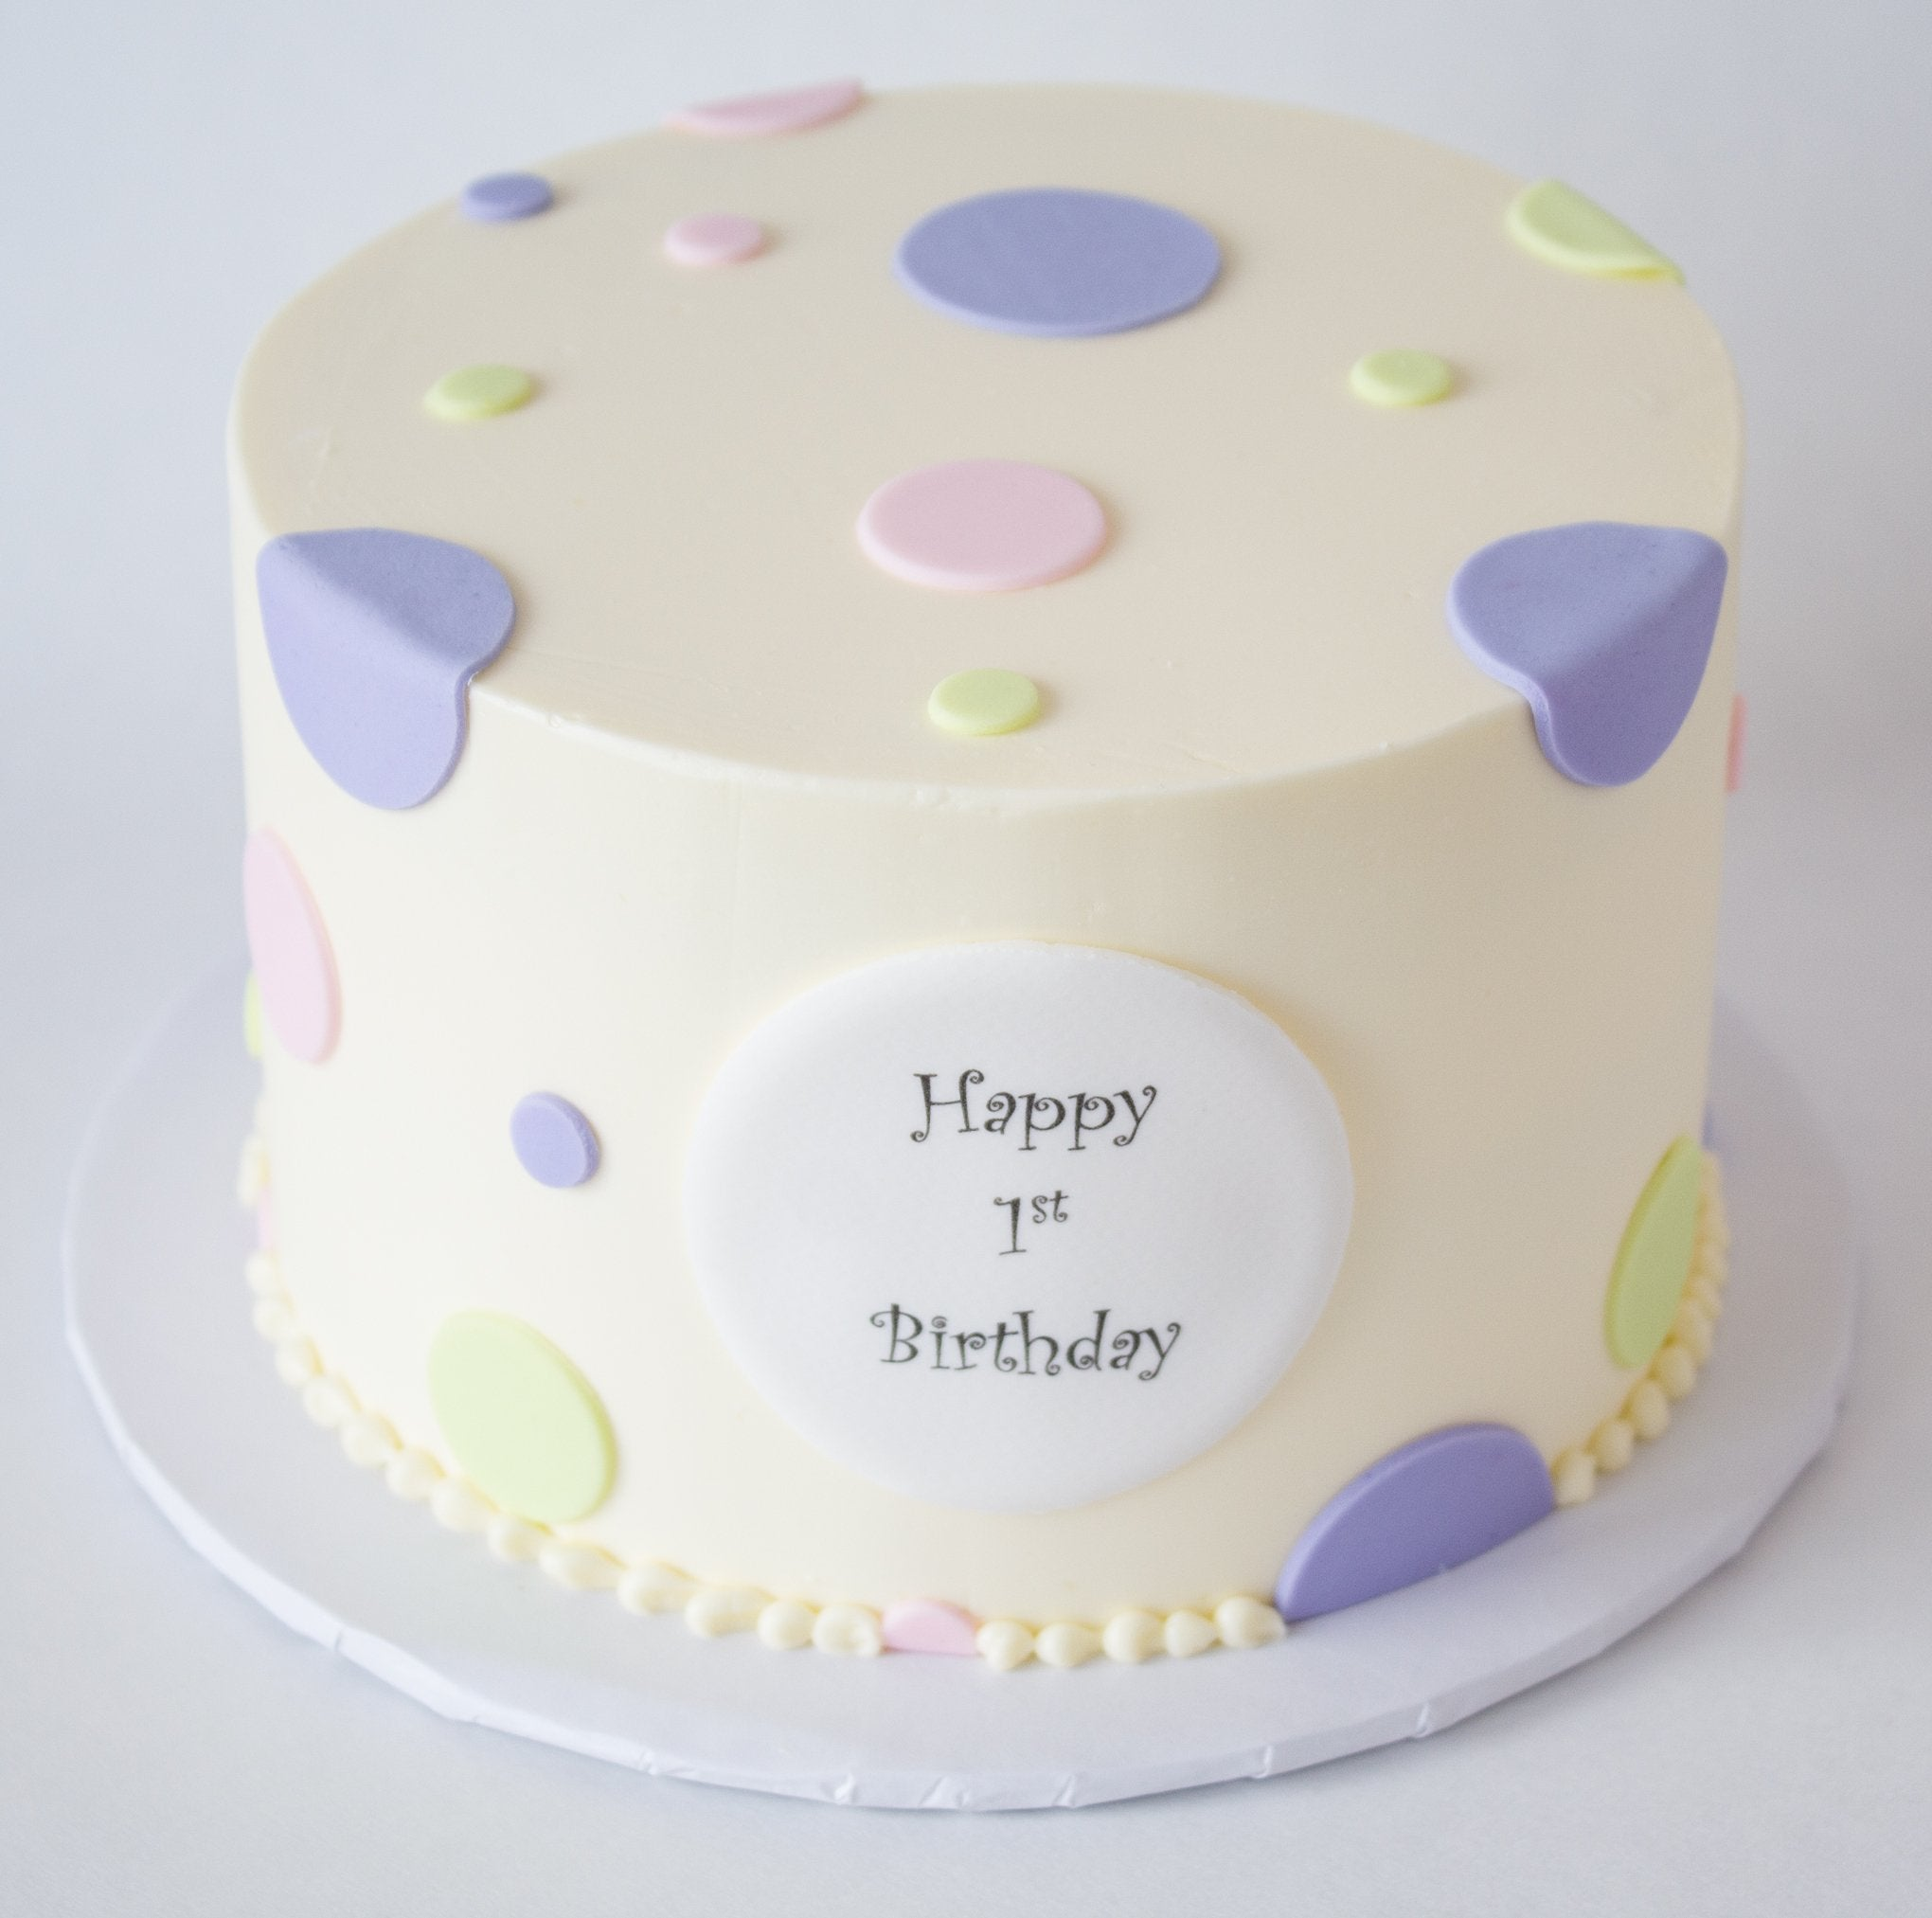 Incredible Polka Dot Cake Cake Royale Delicious Cakes And Desserts Funny Birthday Cards Online Fluifree Goldxyz